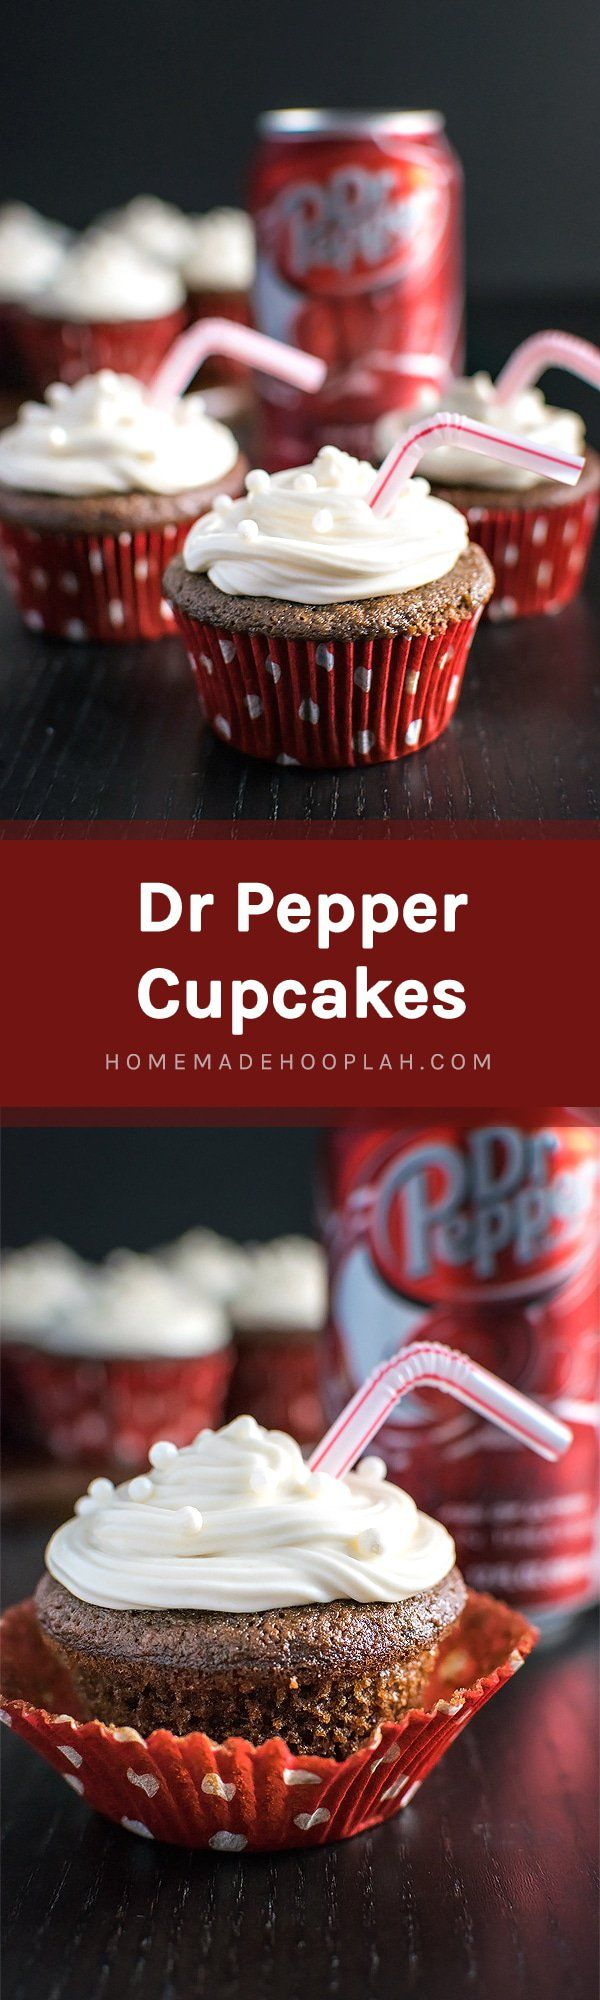 Dr Pepper Cupcakes! Have a Dr Pepper fan in your life? Then they're going to love these! Rich chocolate buttermilk cupcakes with a hint of their favorite fizzy soda.   HomemadeHooplah.com